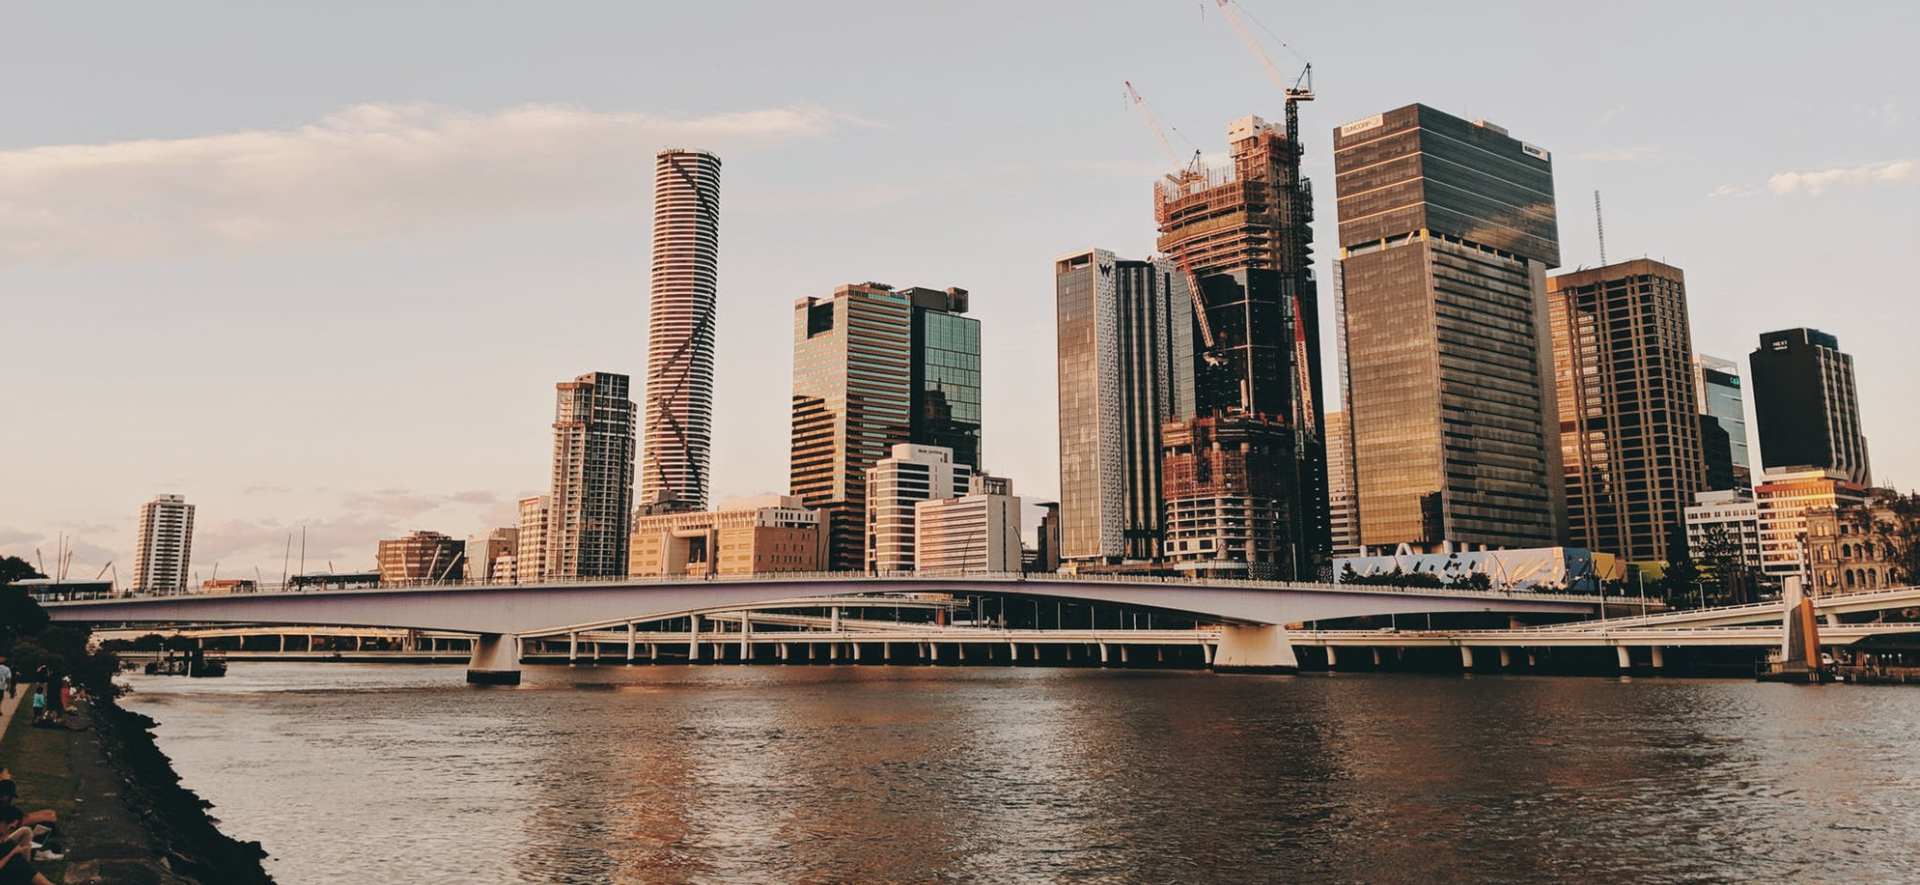 Landscape image of city (Brisbane)